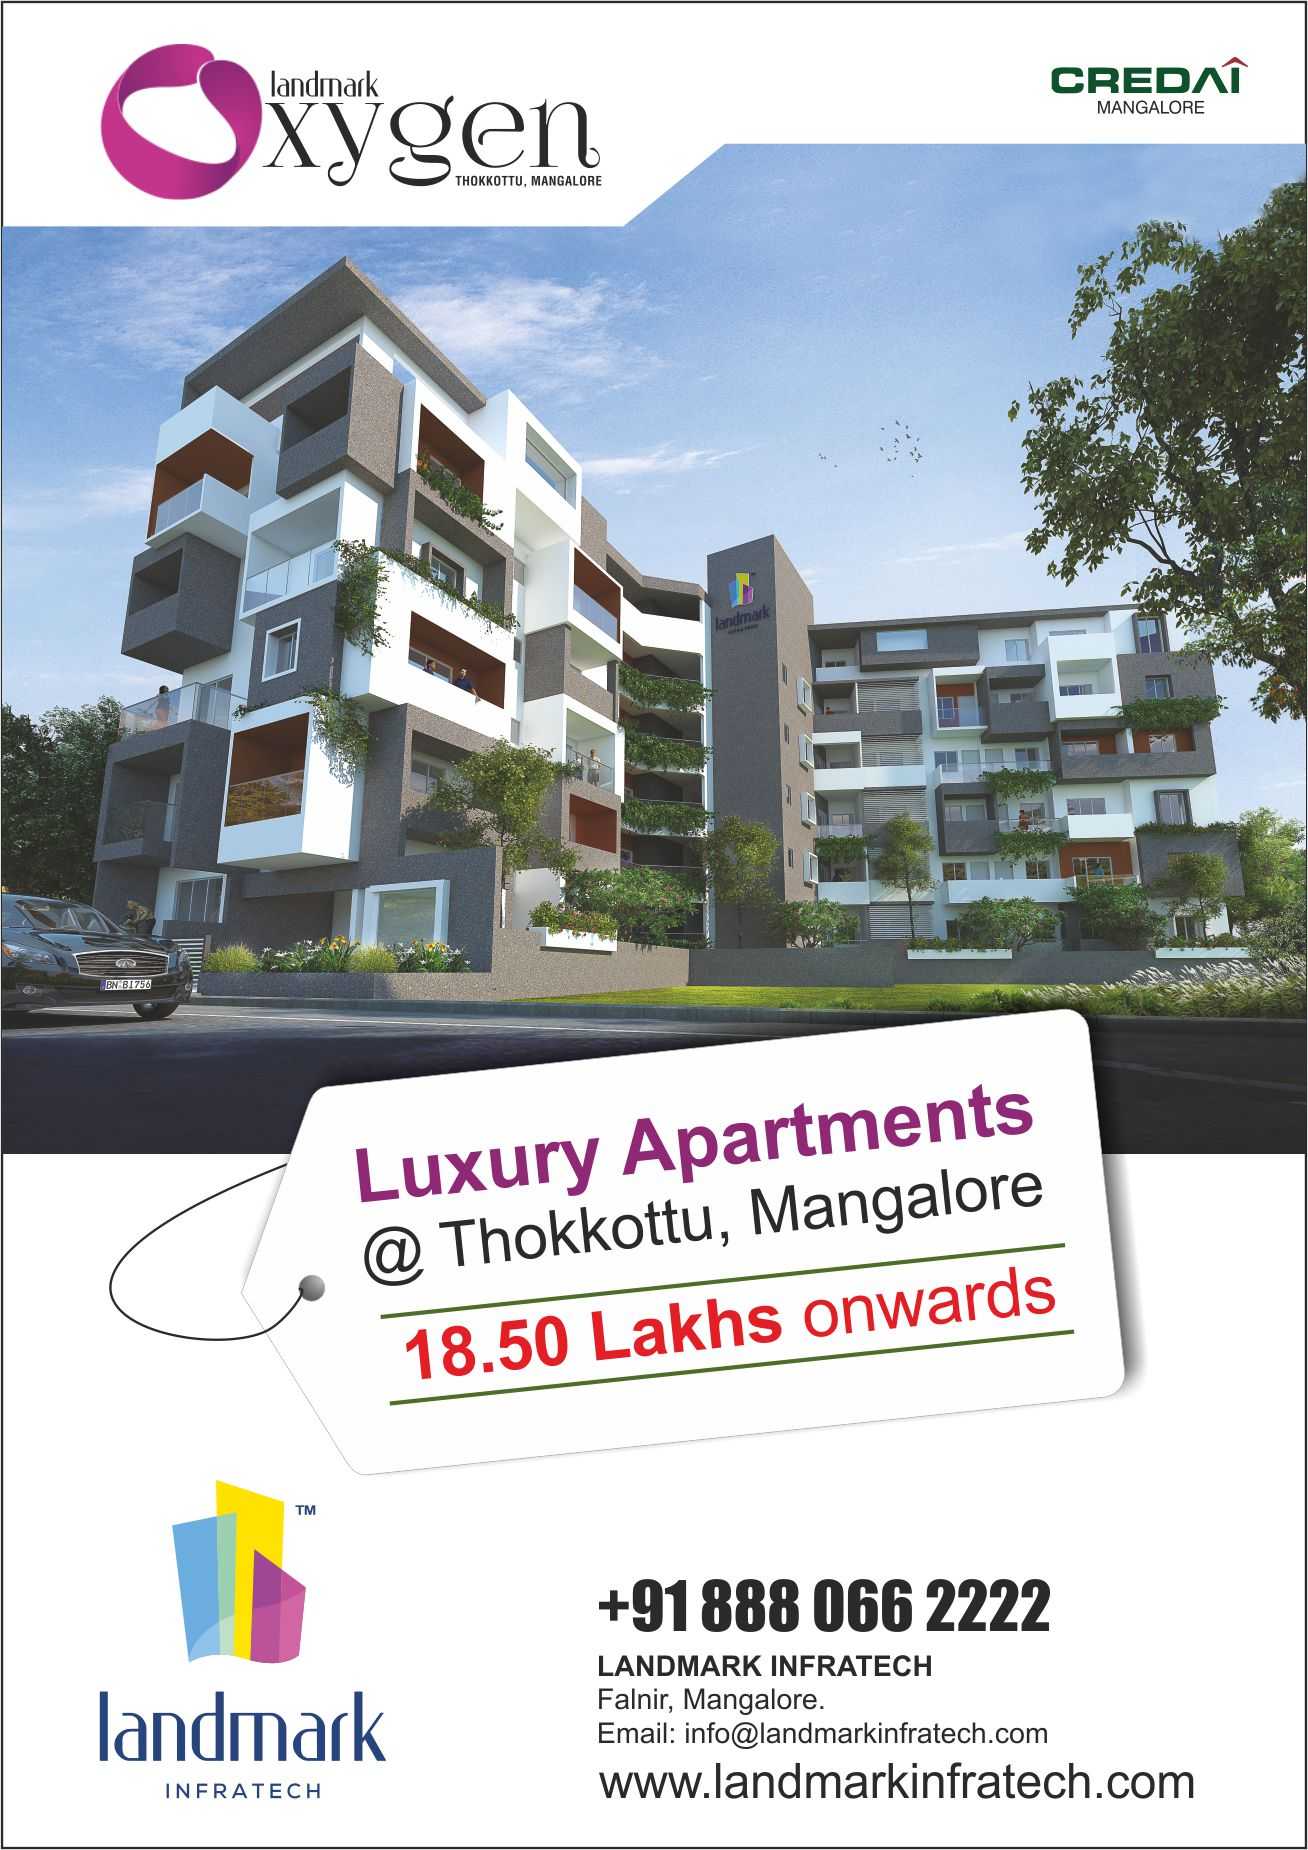 1BHK APARTMENT IN MANGALORE                           Oxygen